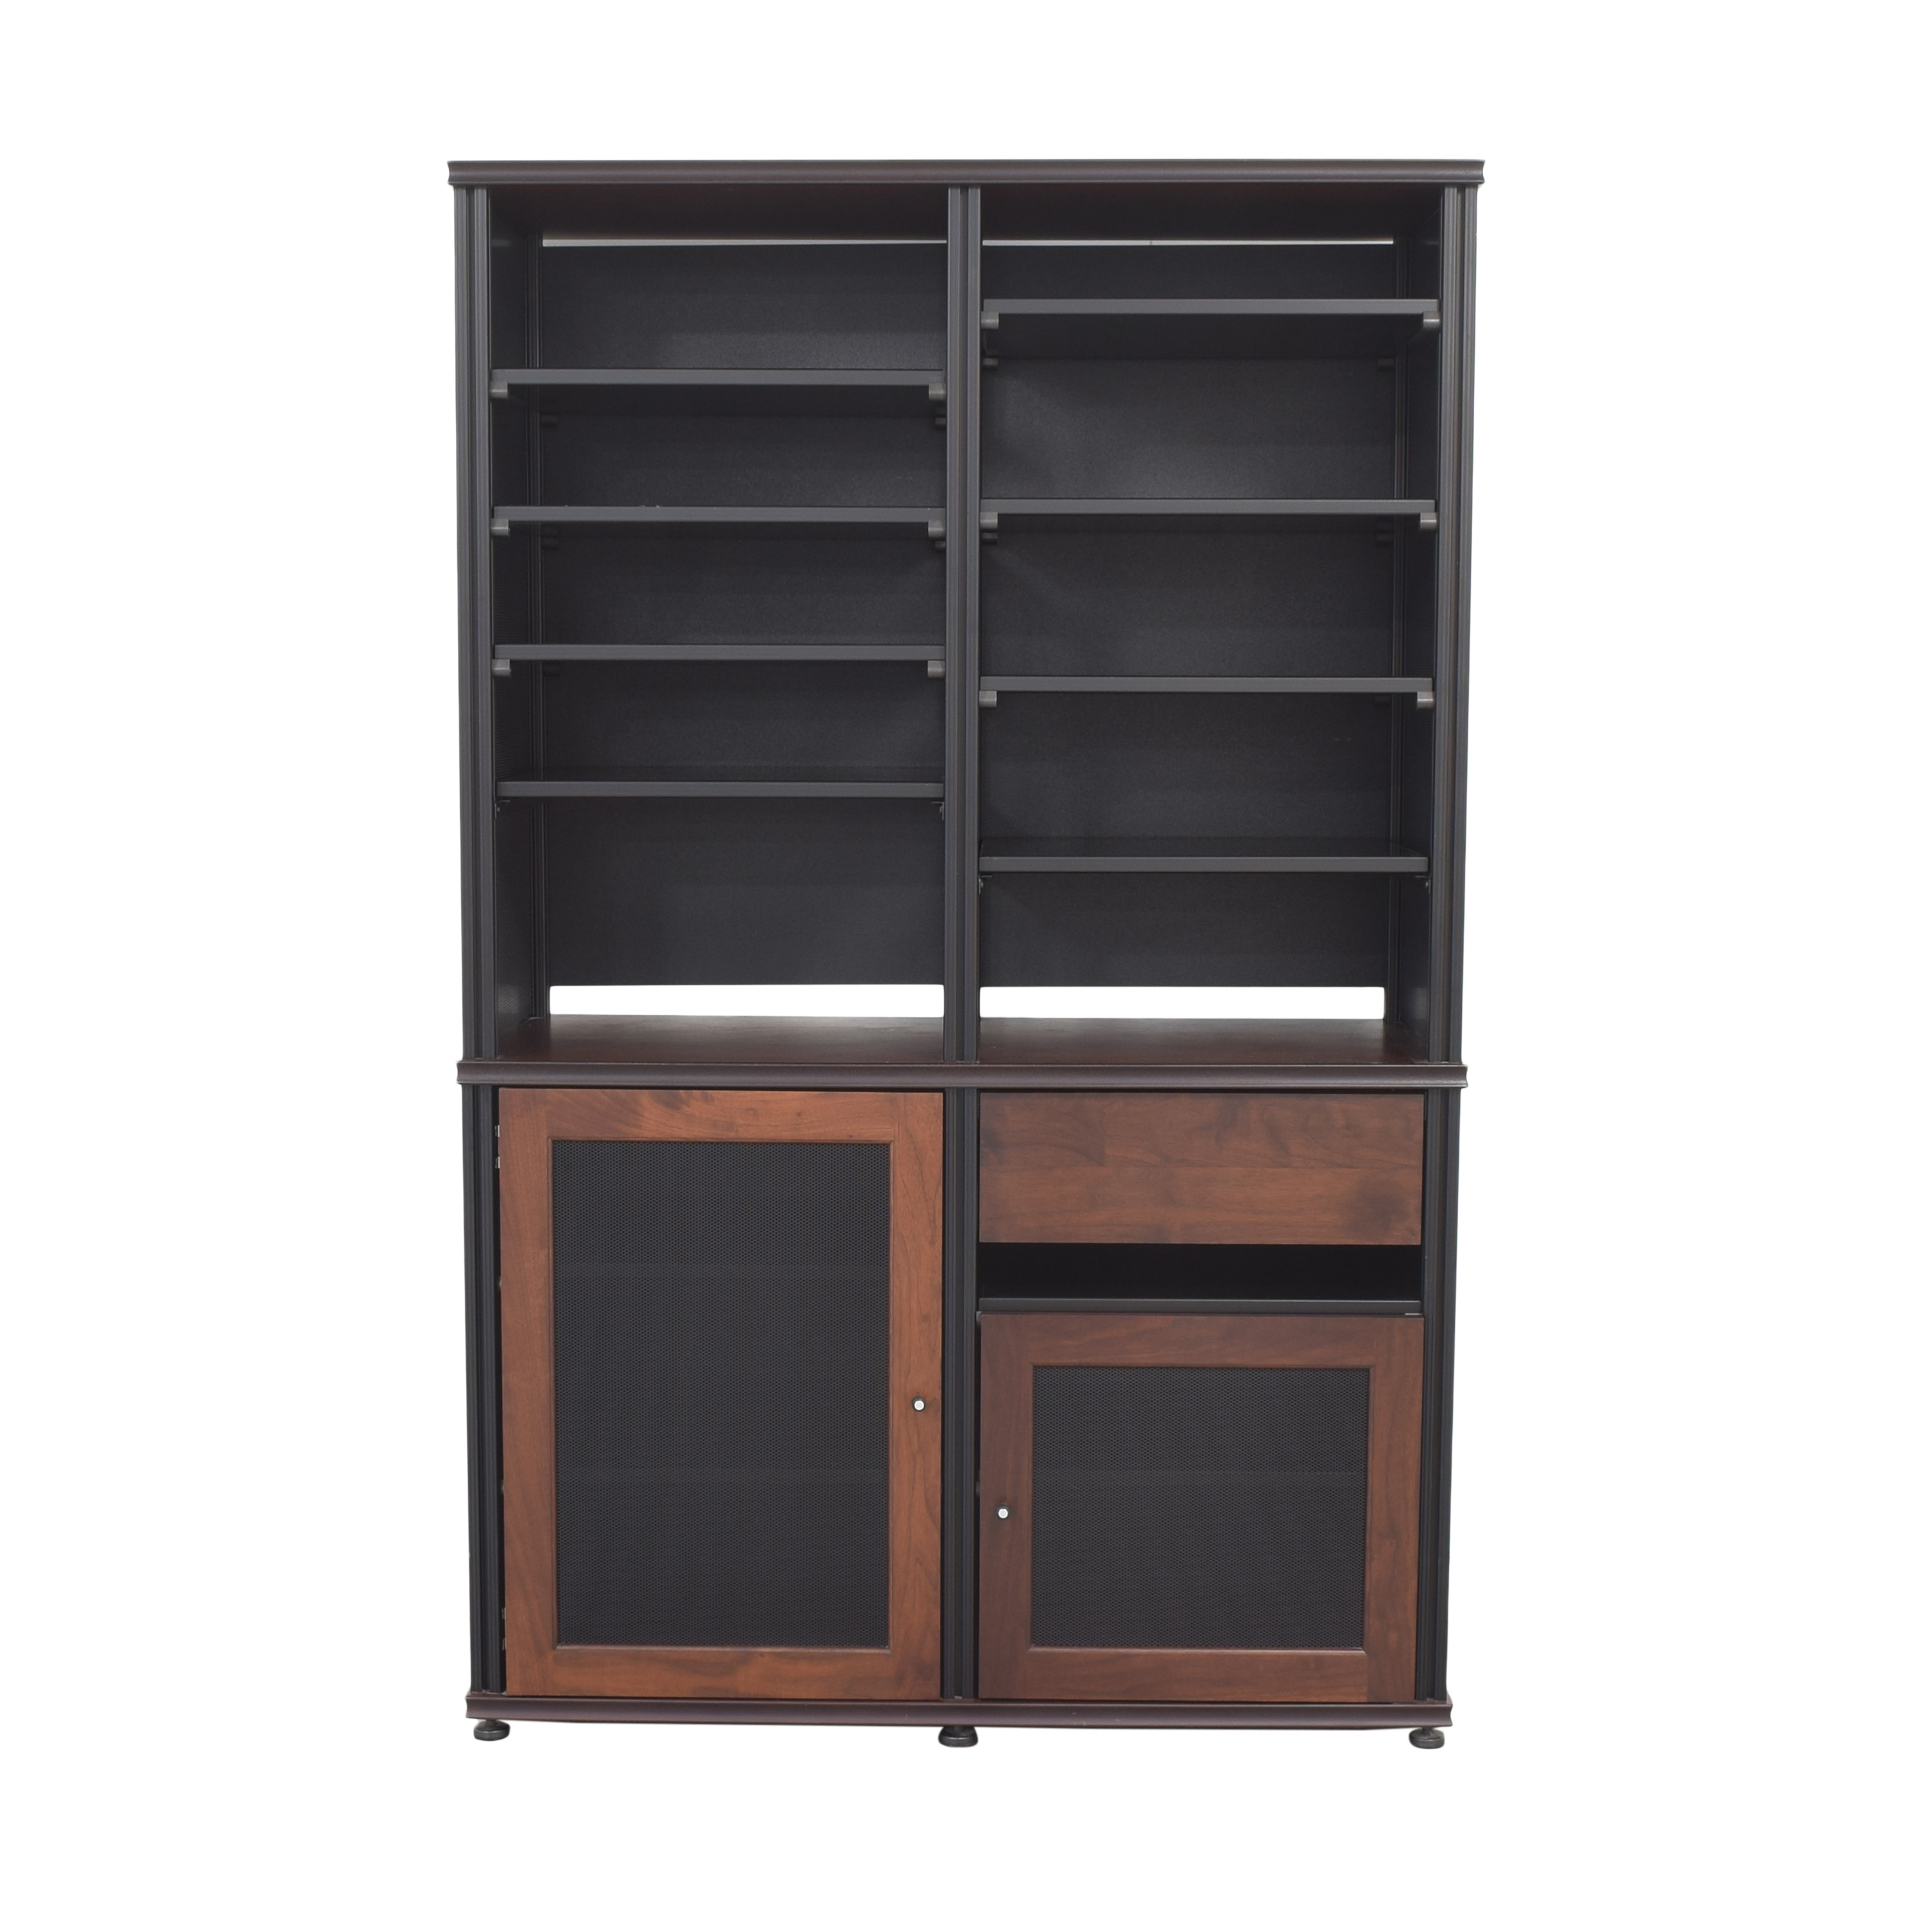 Salamander Designs Synergy Bookcase and Cabinet / Storage